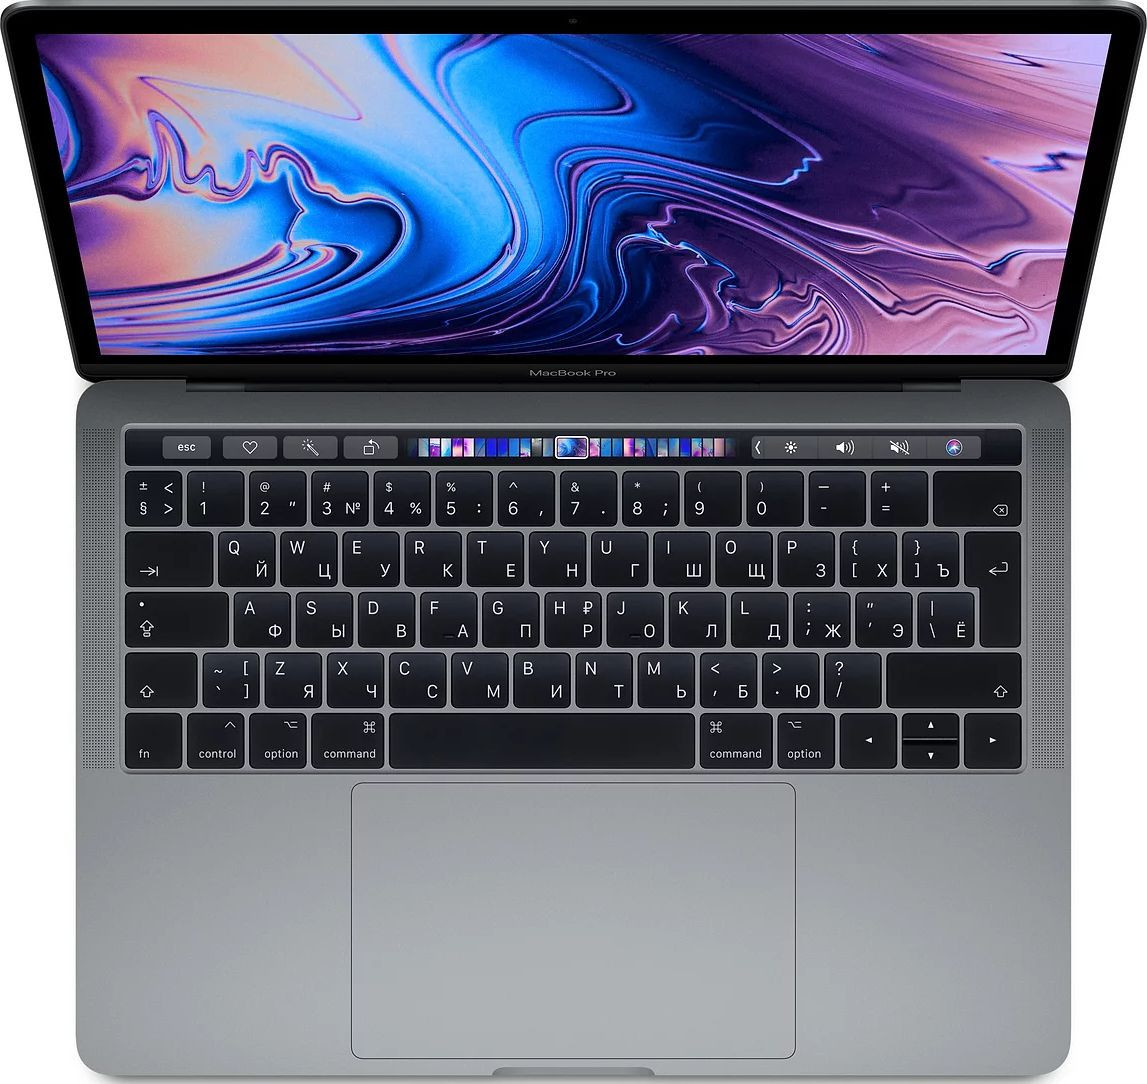 Macbook Pro 13' 2019 i5 128gb touch MUHN2 Space Gray